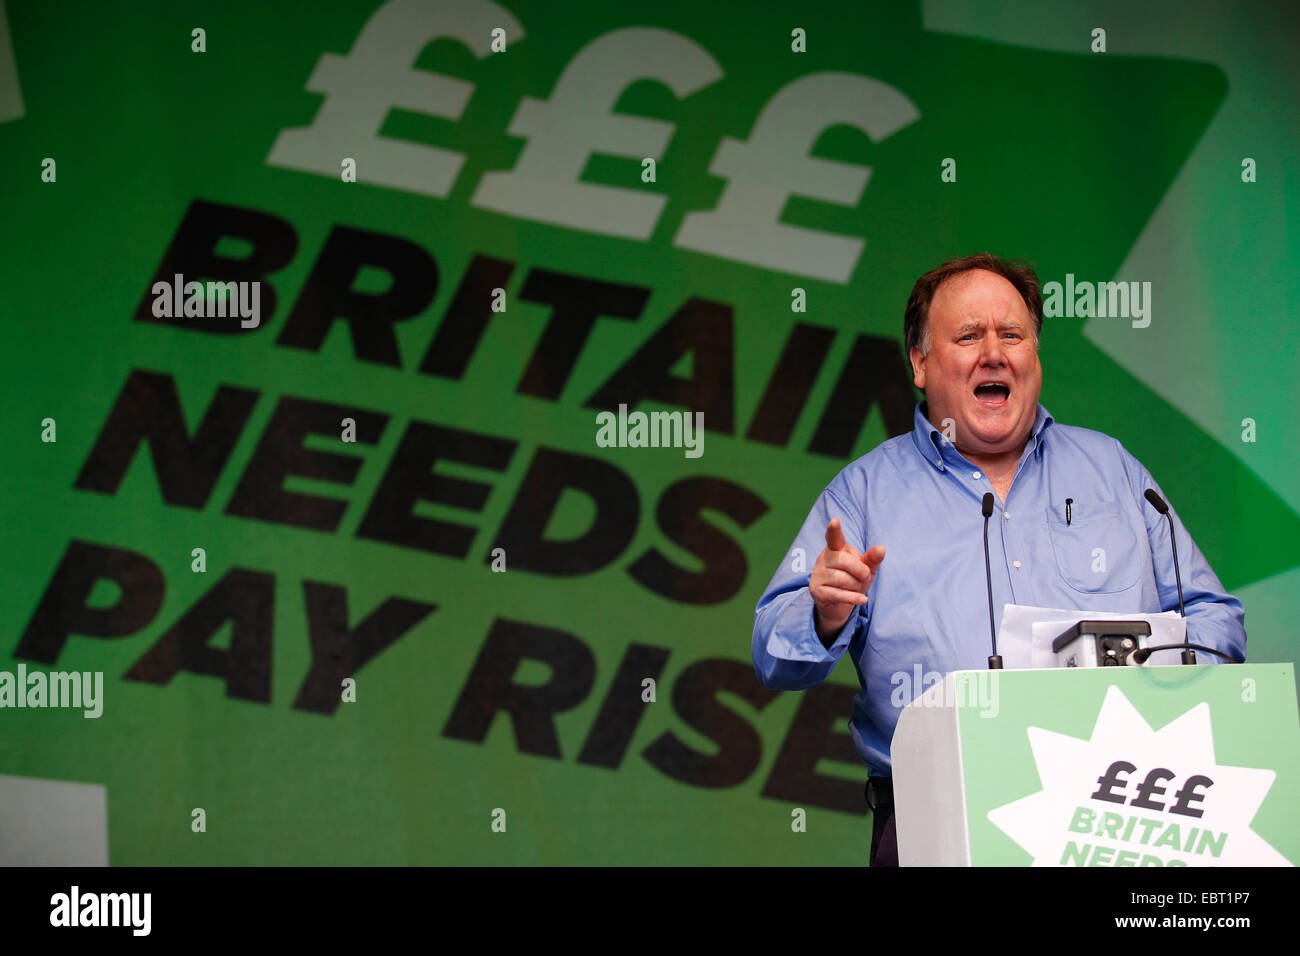 Billy Hayes, CWU, speaks at a protest gathering against falling real wages in London on October 18, 2014 - Stock Image